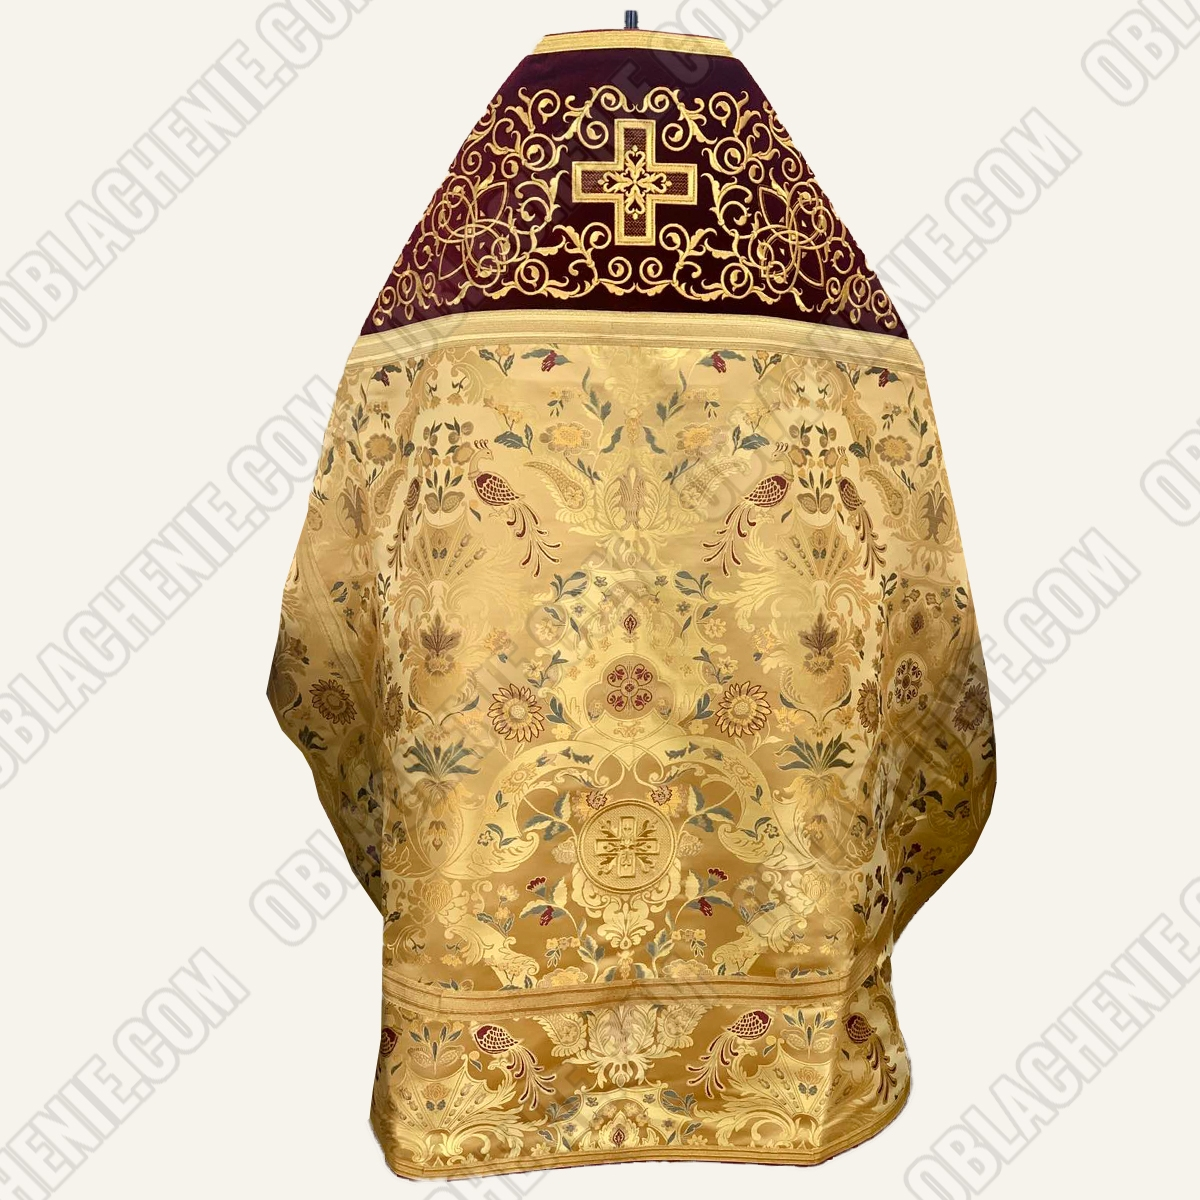 PRIEST'S VESTMENTS 11160